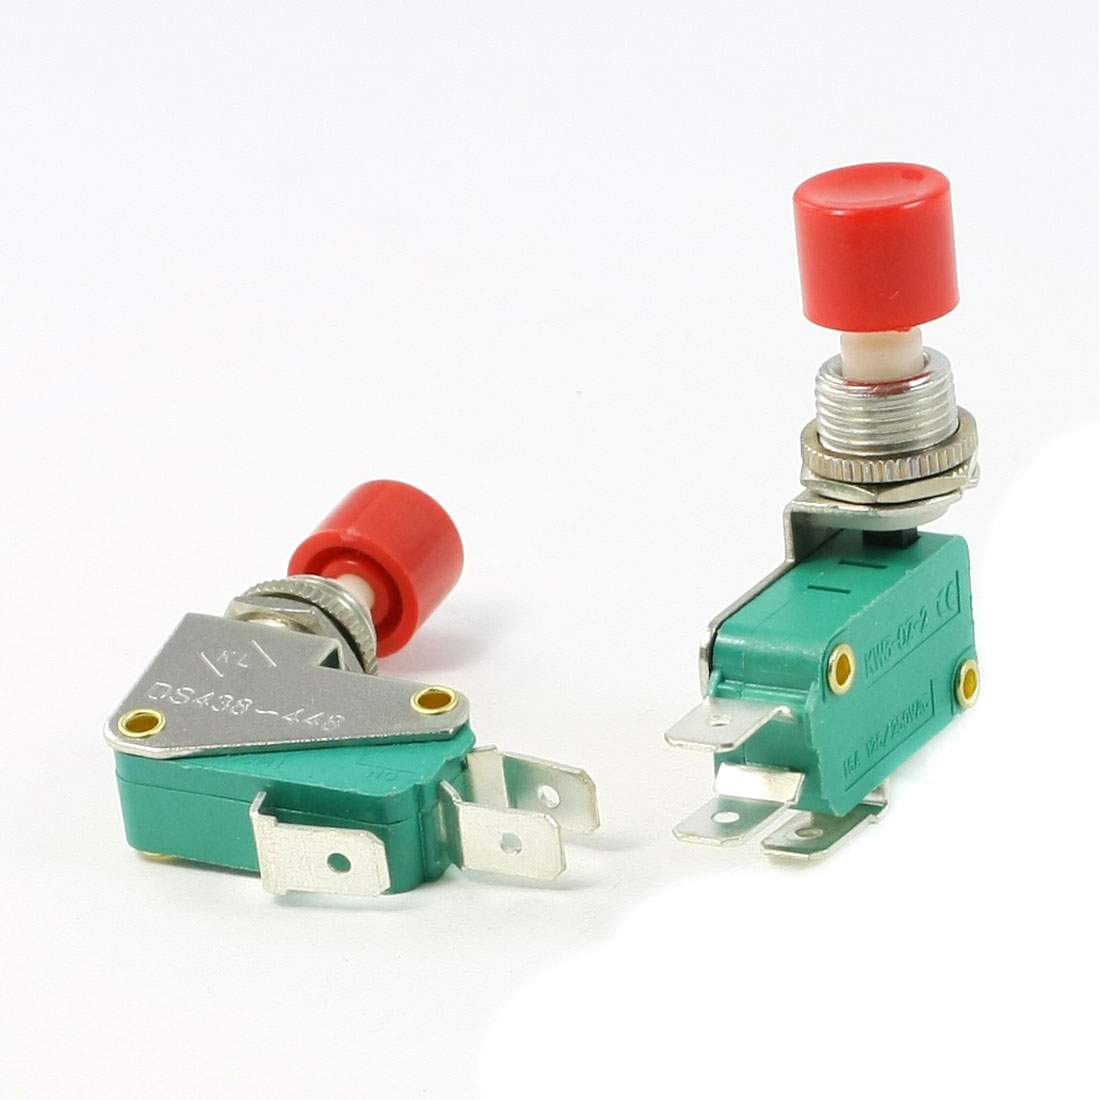 2 Pcs SPDT 1NO 1NC Red Button Actuator Momentary Miniature Micro Switch